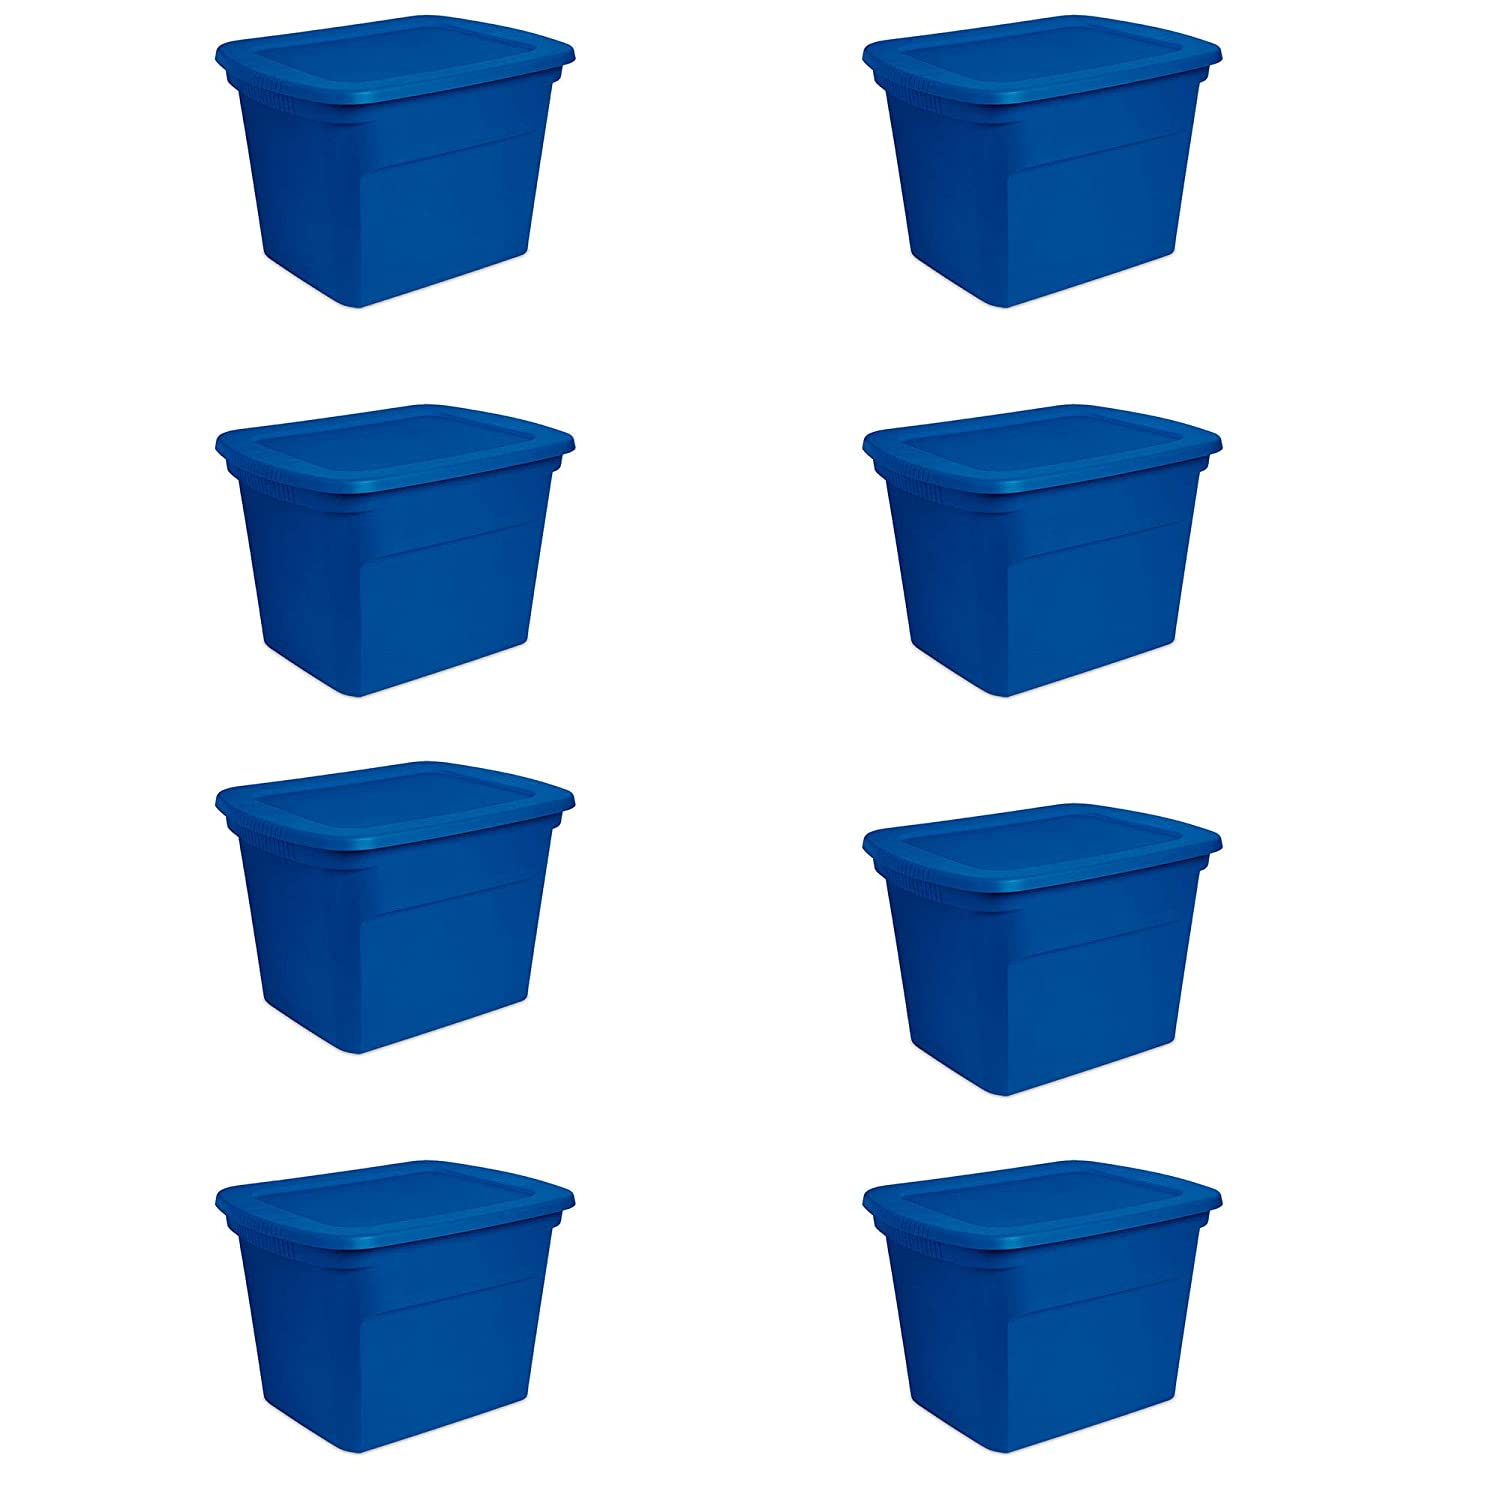 Sterilite 18 Gallon Heavy Duty Stackable Storage Tote, Blue Morpho (8 Pack)